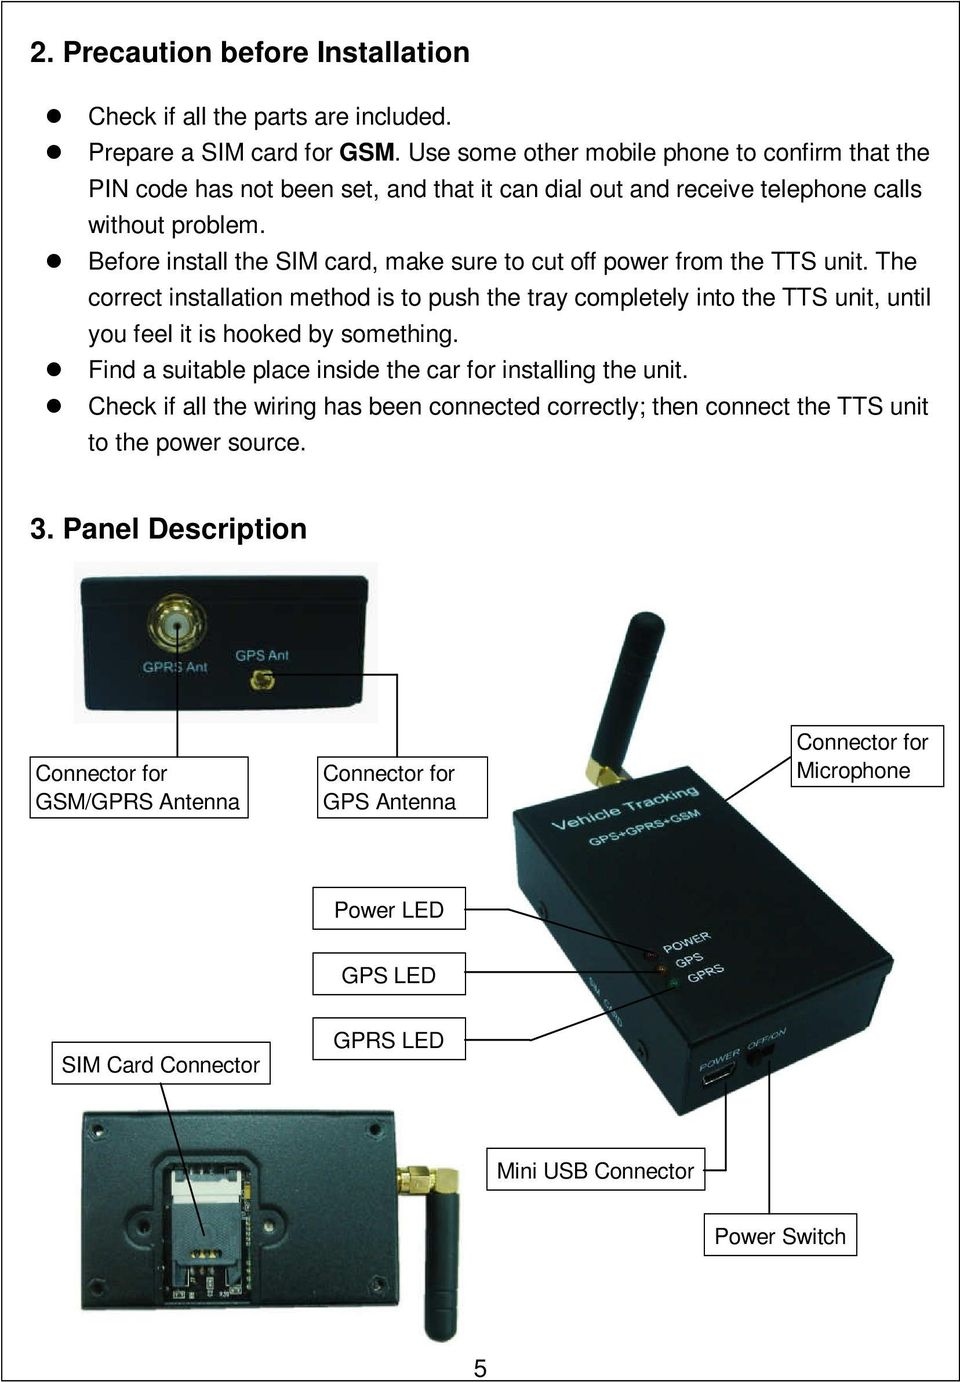 Before install the SIM card, make sure to cut off power from the TTS unit.